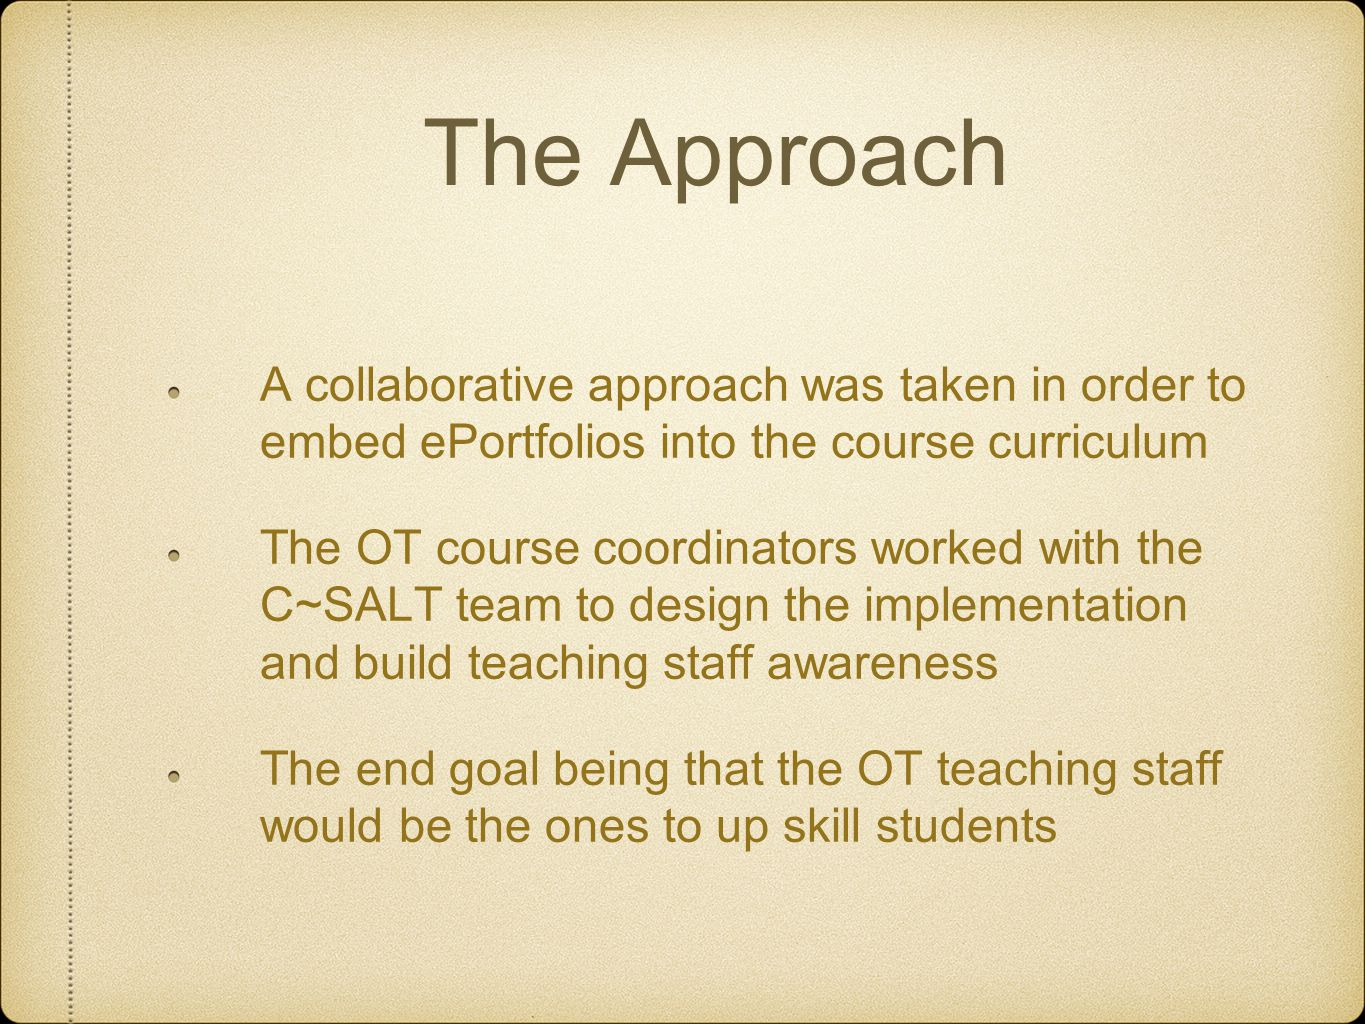 The Approach A collaborative approach was taken in order to embed ePortfolios into the course curriculum.